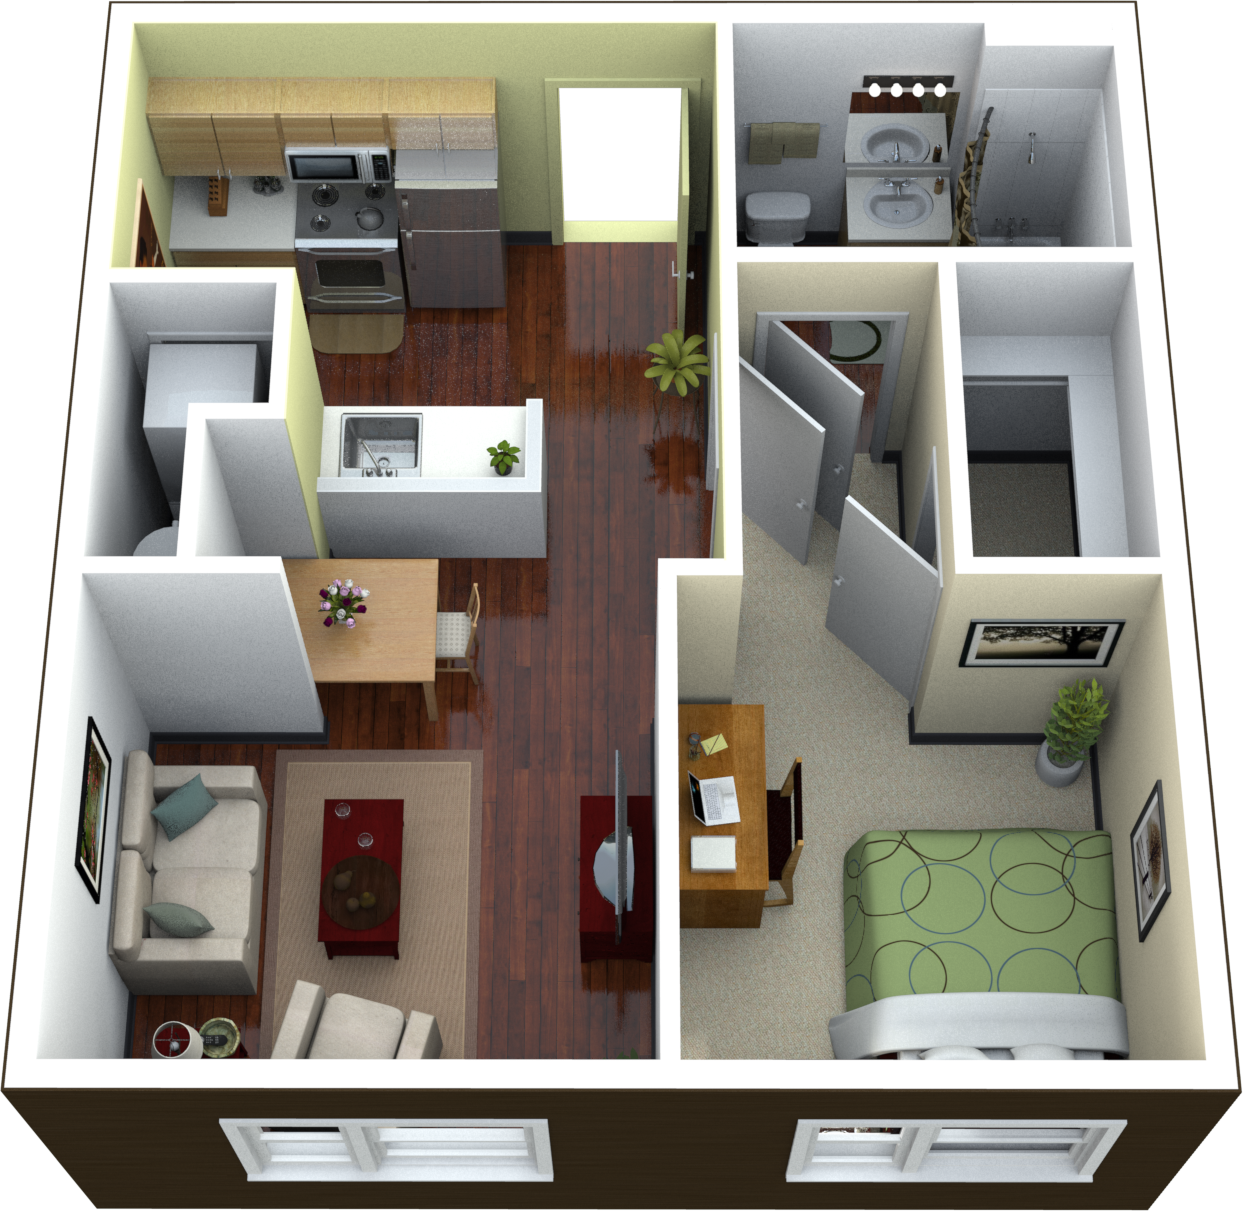 1 bedroom floor plans for apartment design ideas 2017 2018 pinterest garage apartment - Decorate bedroom apartment ...